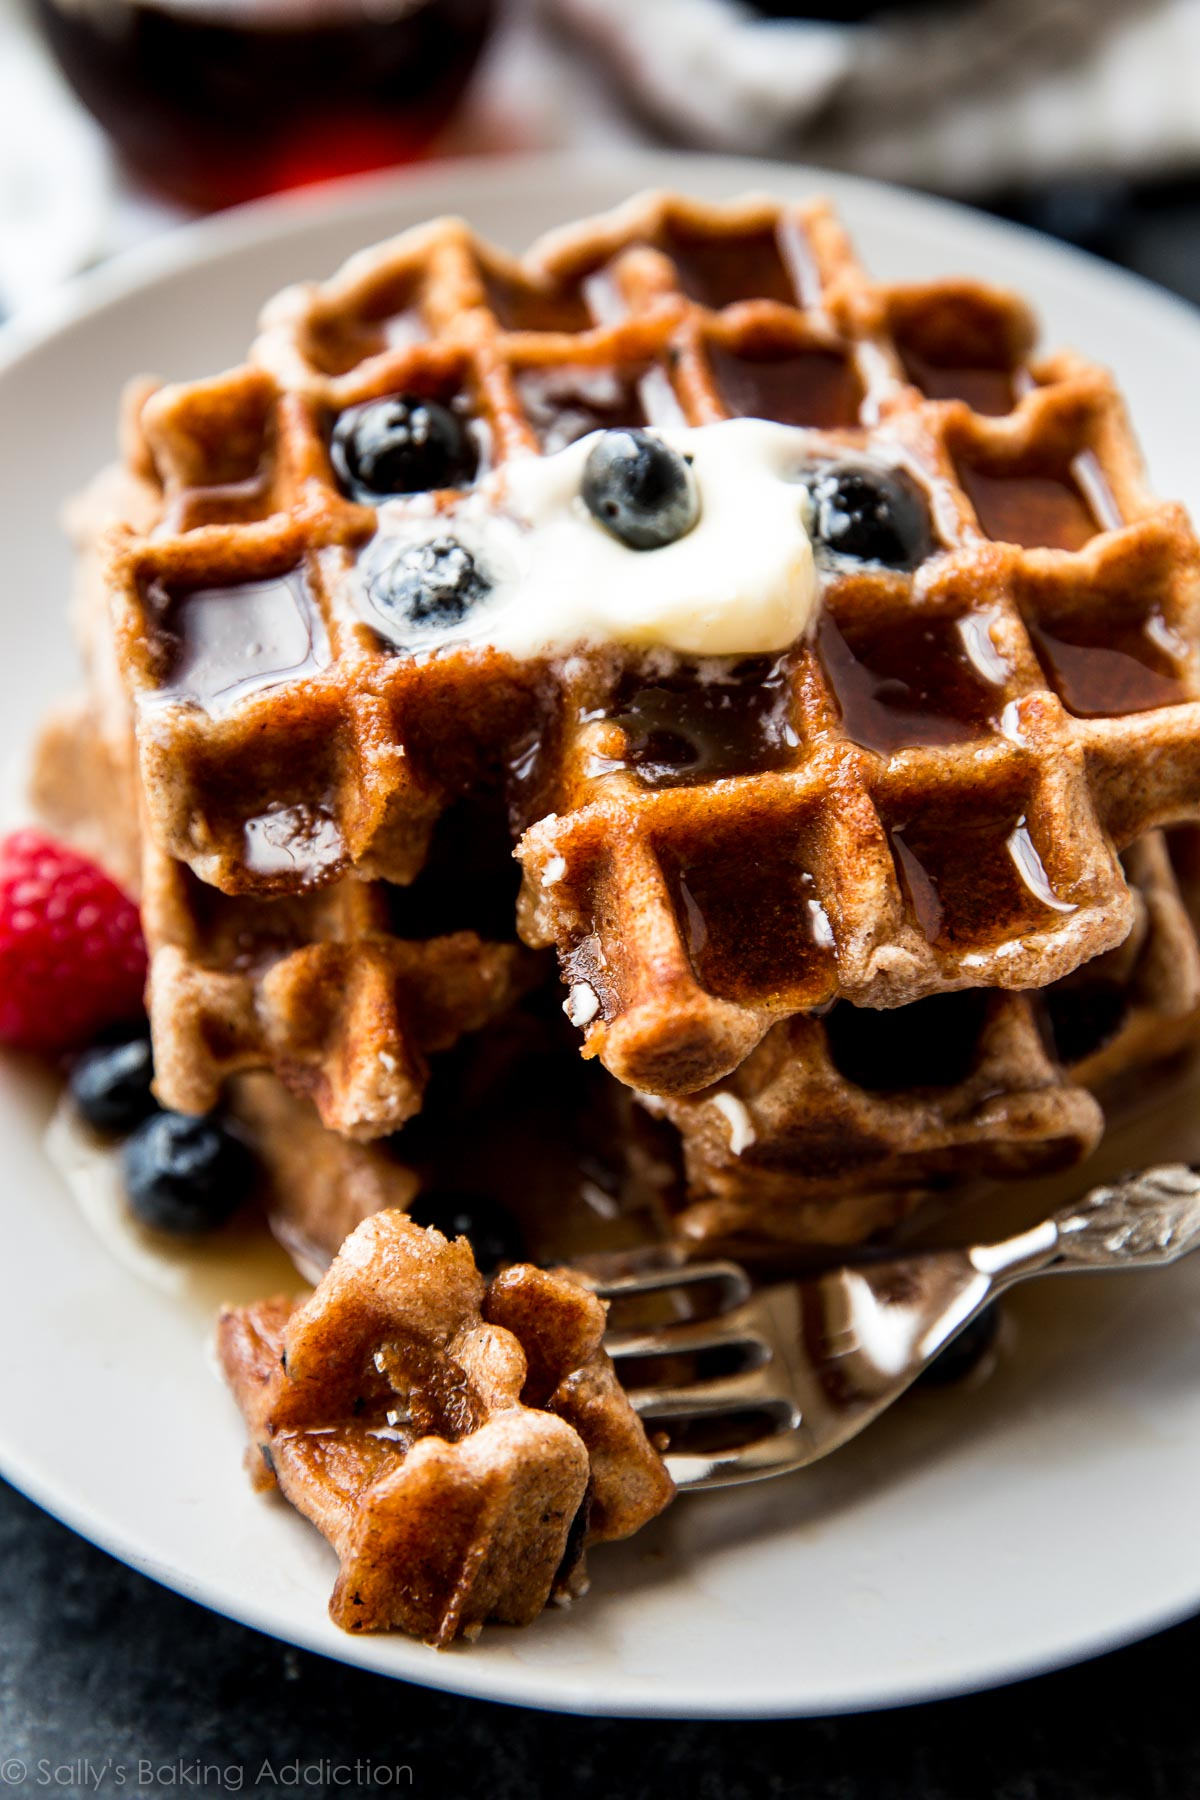 How to make FLUFFY whole wheat waffles! You can't even tell they are made with whole wheat flour. Great flavor, easy healthy waffles! Recipe on sallysbakingaddiction.com